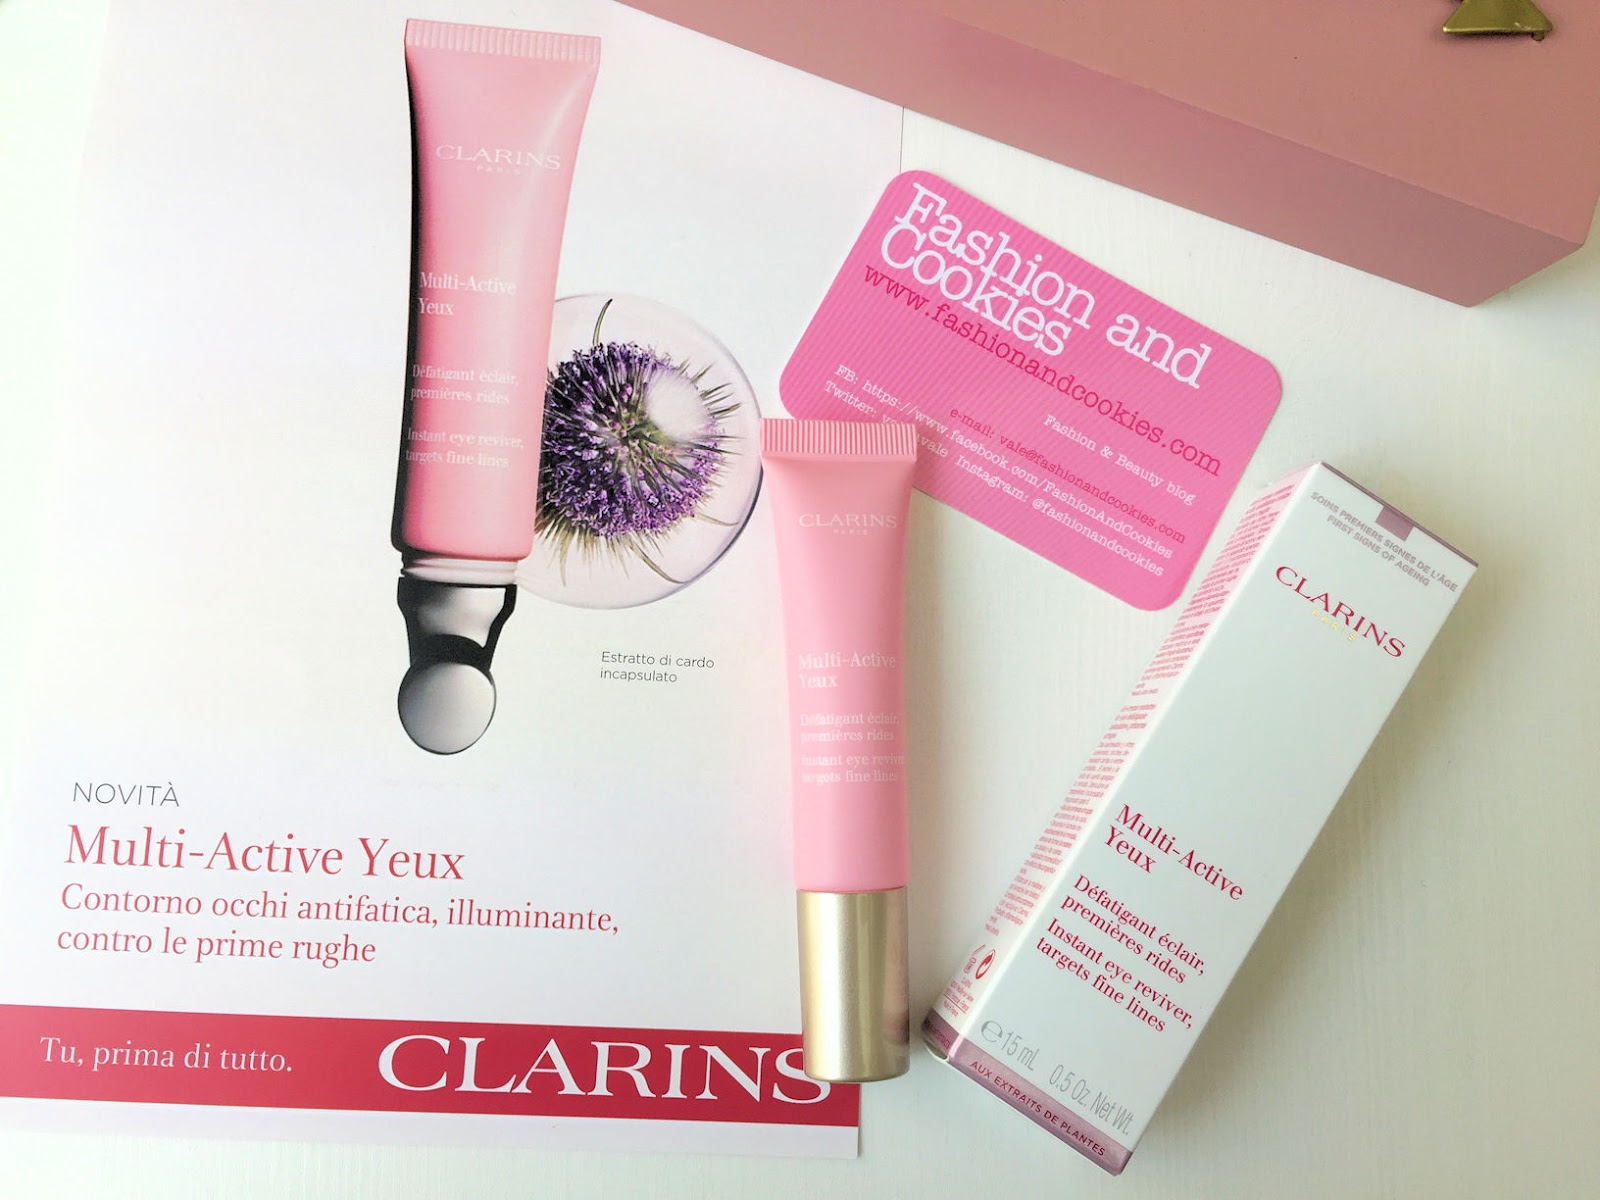 Clarins Multi-Active Yeux gel-crema contorno occhi Clarins su Fashion and Cookies beauty blog, beauty blogger